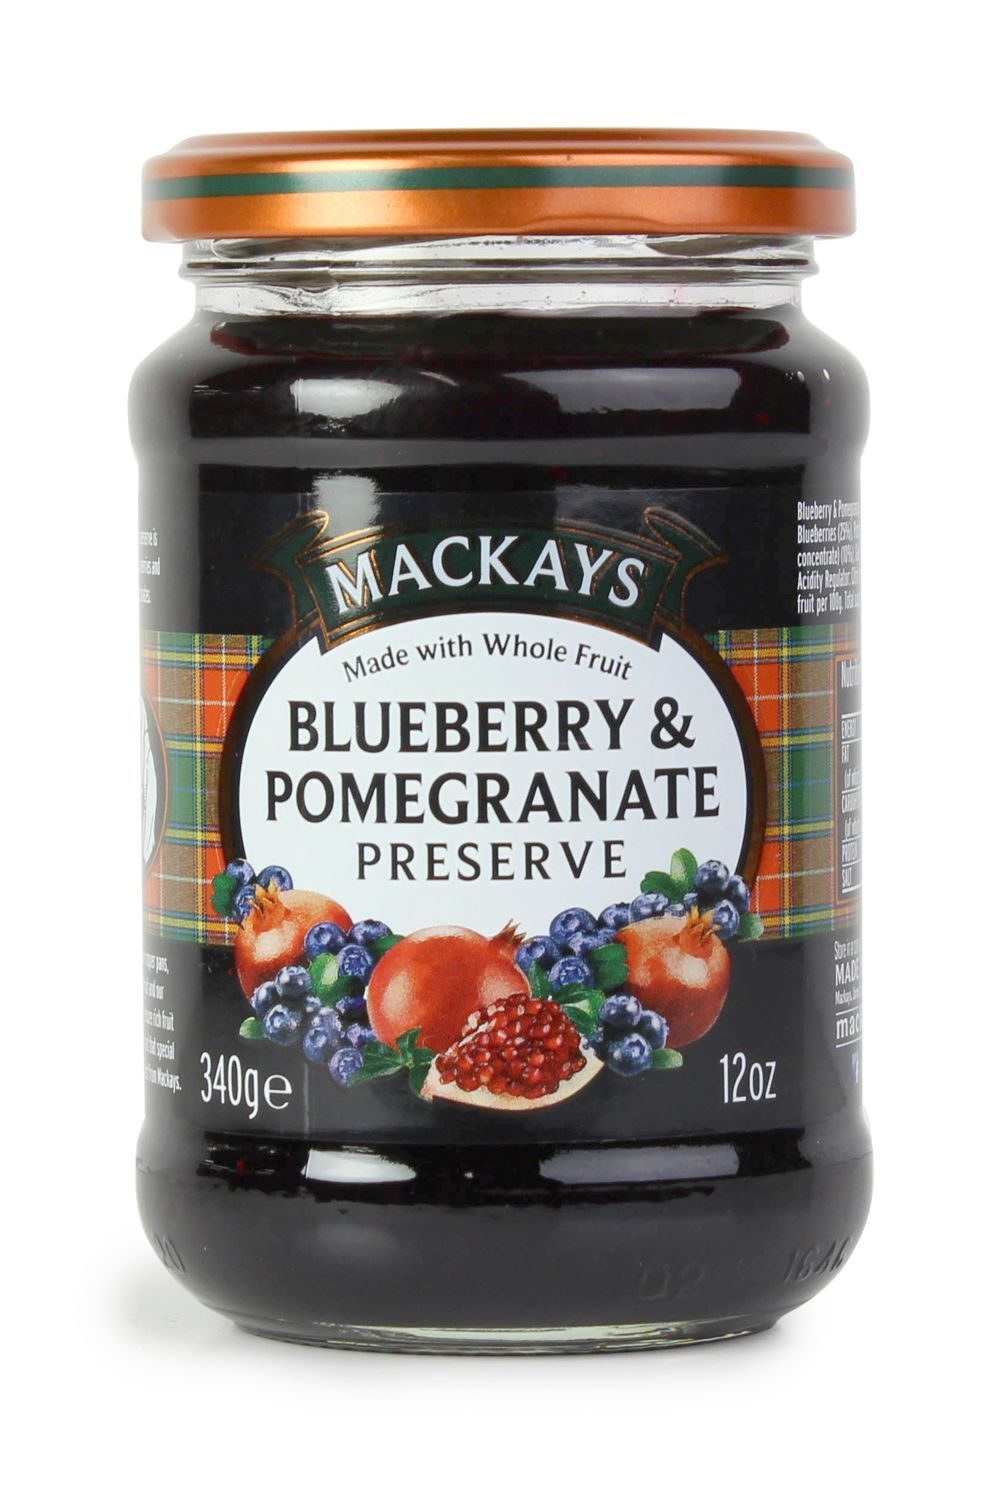 Blueberry & Pomegranate Preserve